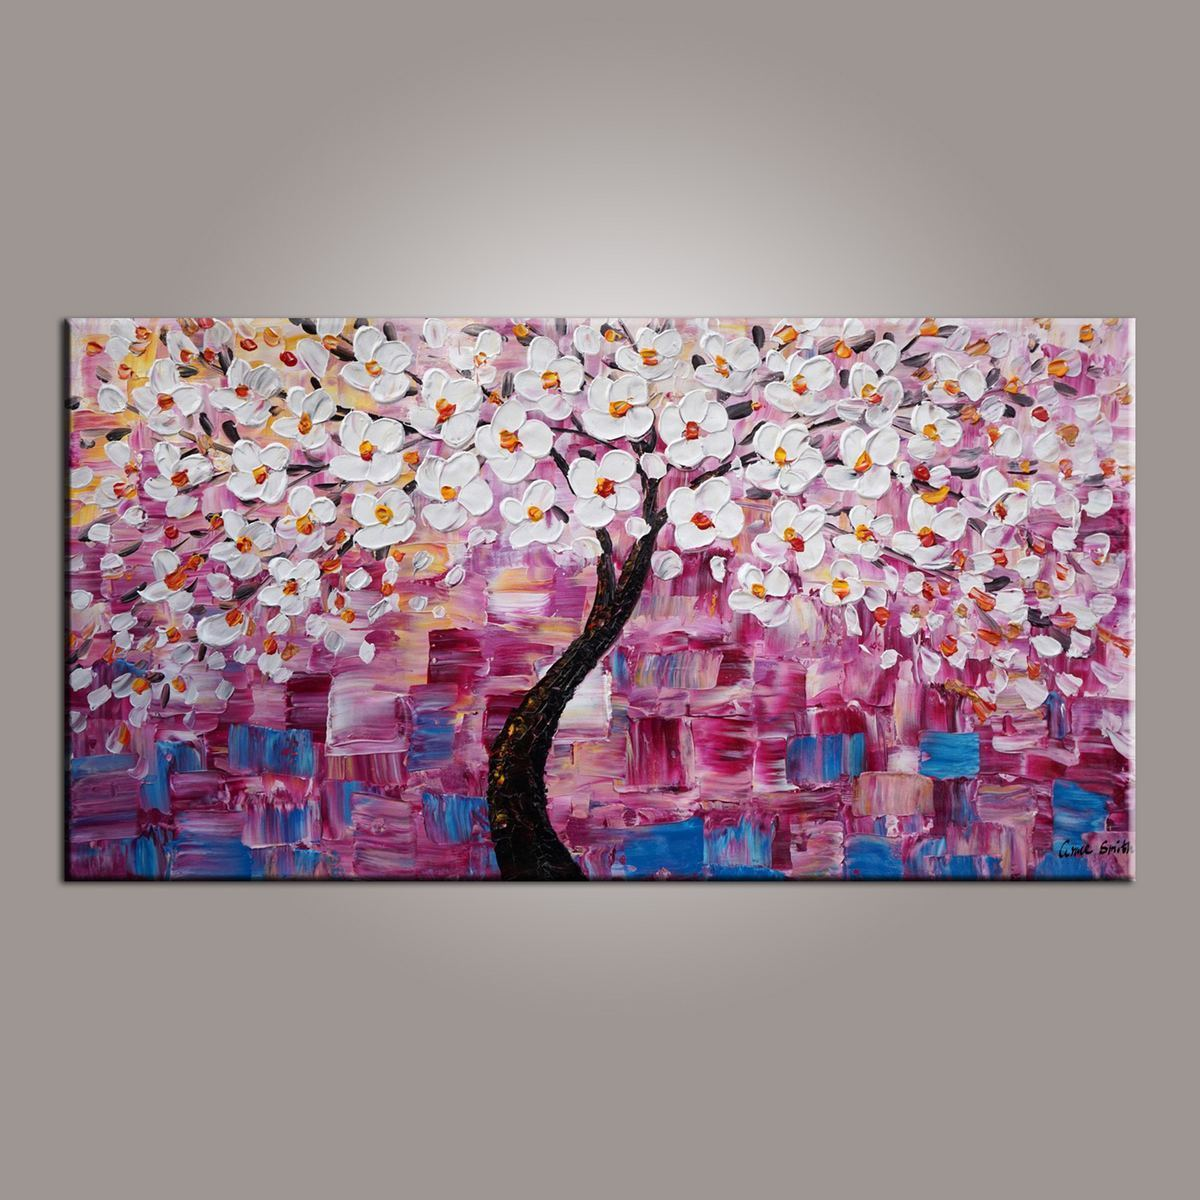 Flower tree painting art on sale abstract art painting dining room wall art